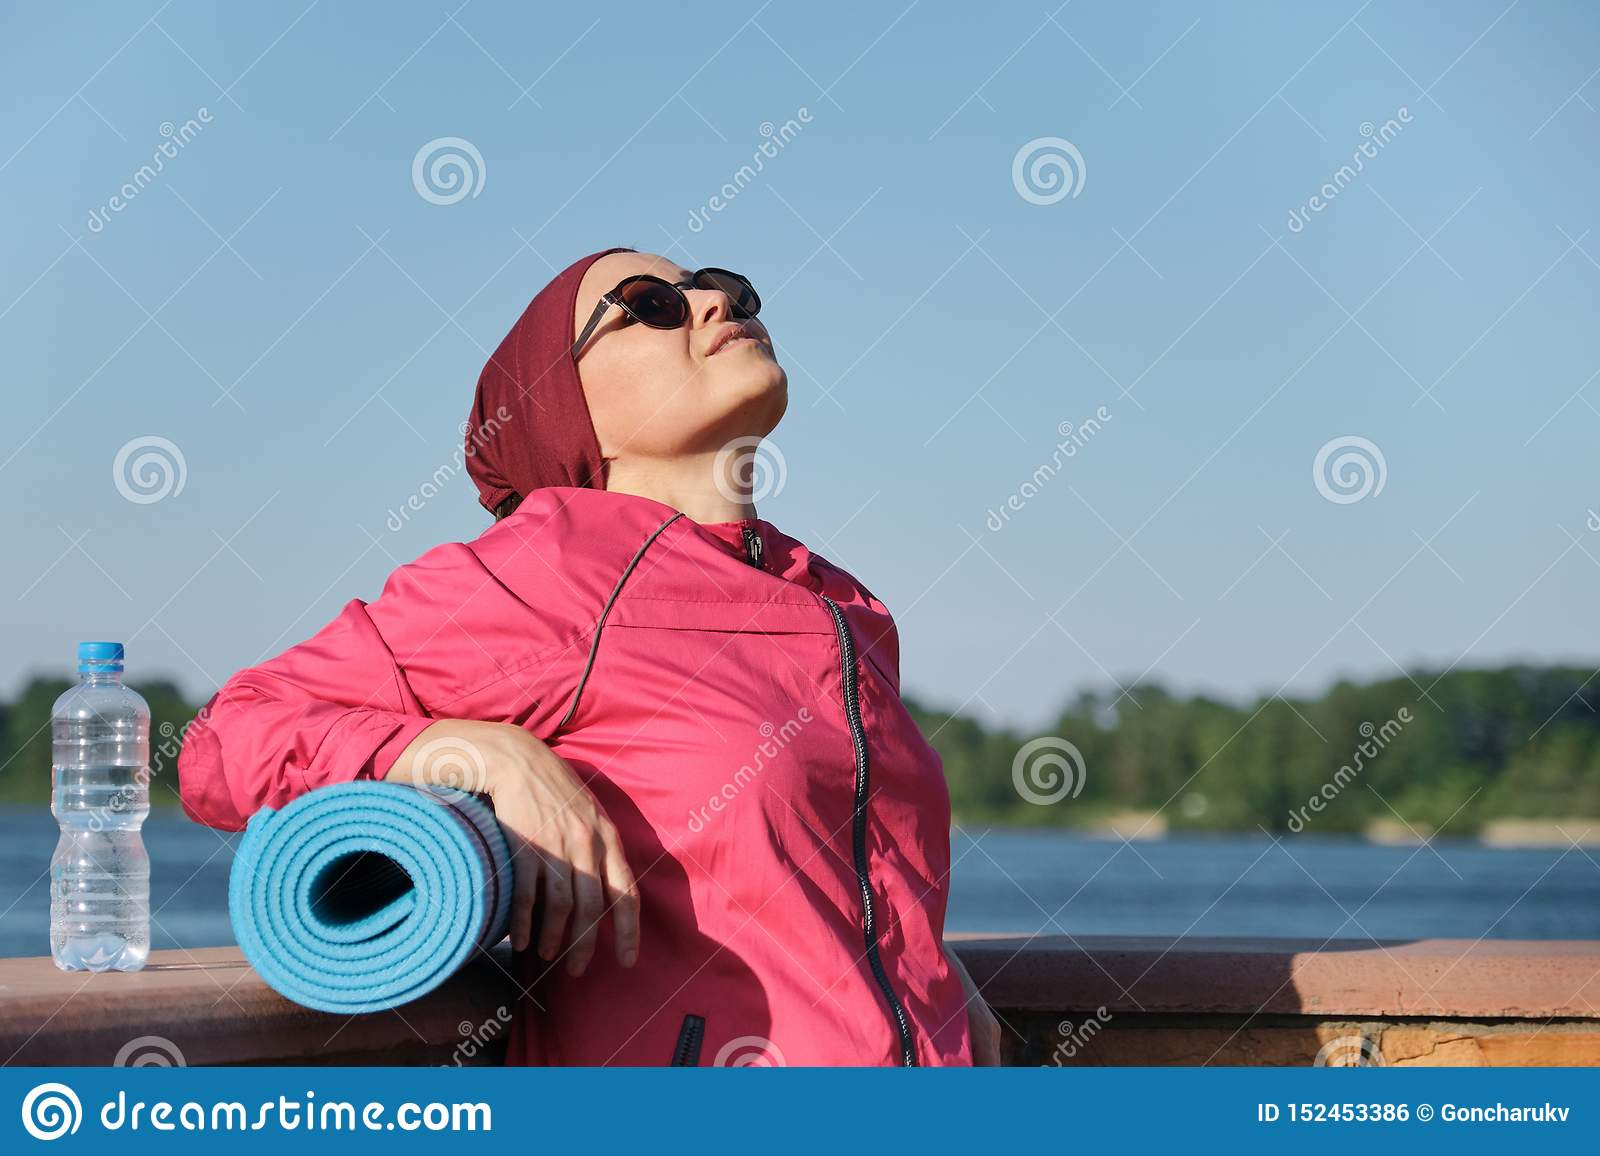 Healthy lifestyle of mature woman, outdoor portrait of an age female in sportswear with yoga mat and bottle of water